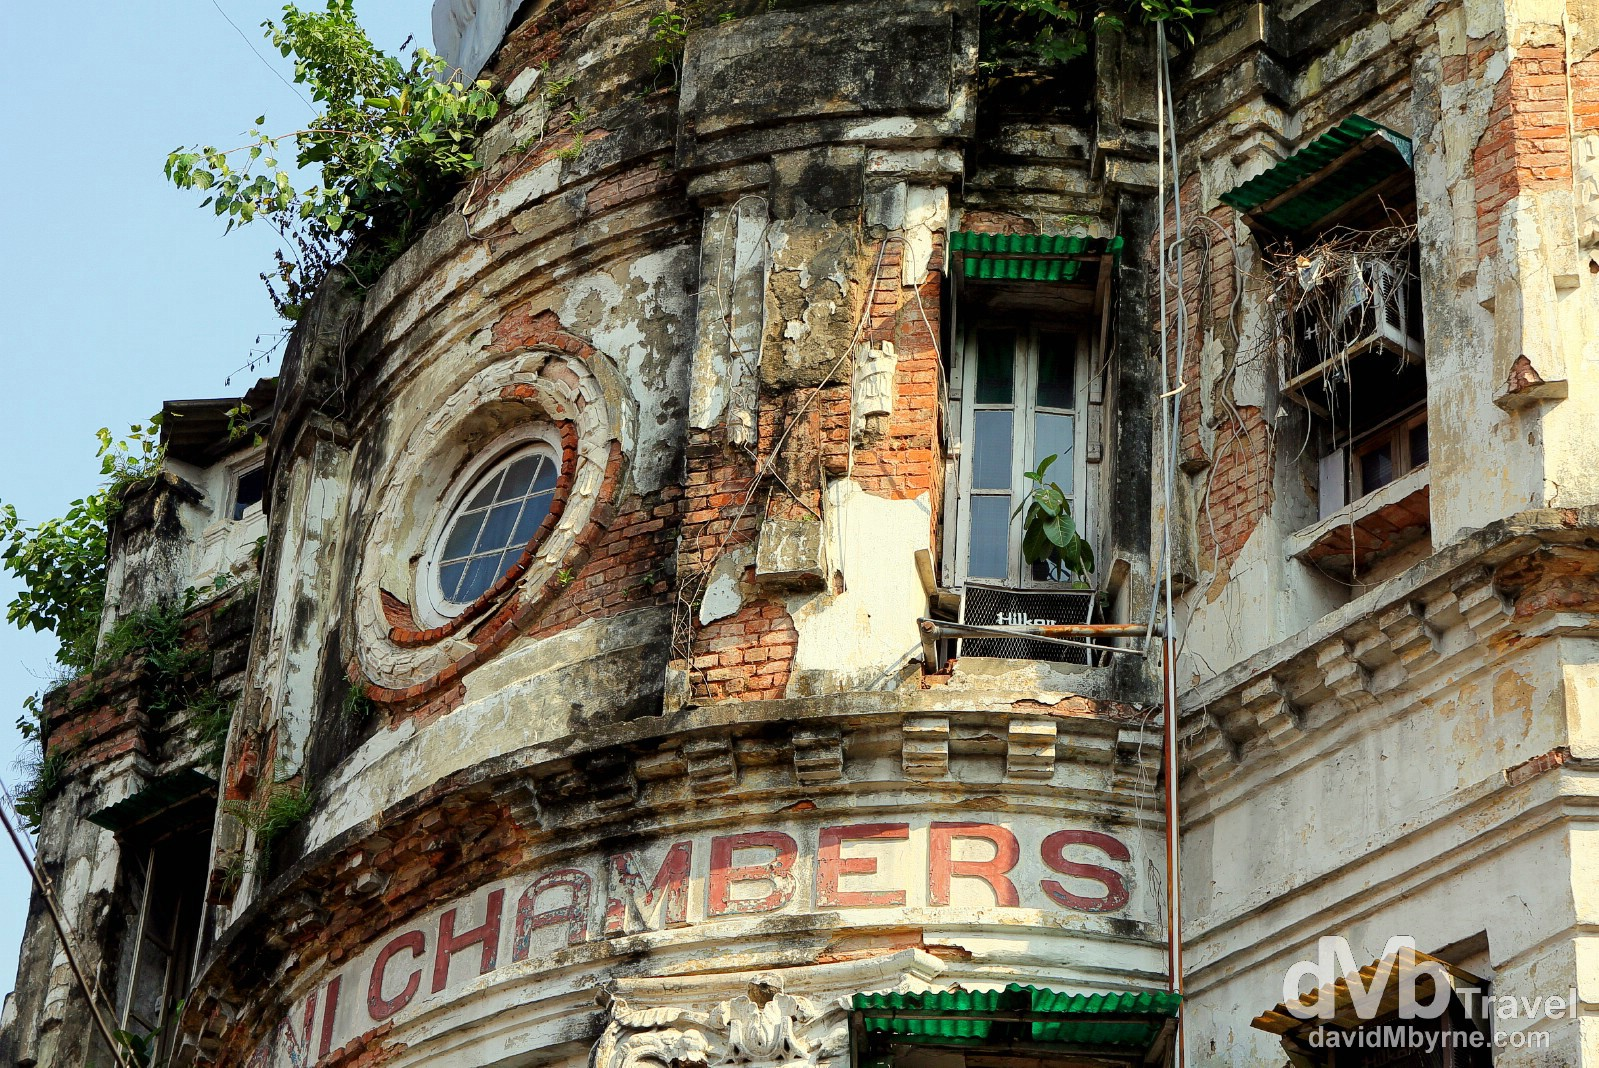 The crumbling façade of the Futani Chambers building in the BBD Bagh area of Calcutta, West Bengal, India. October 15th 2012.